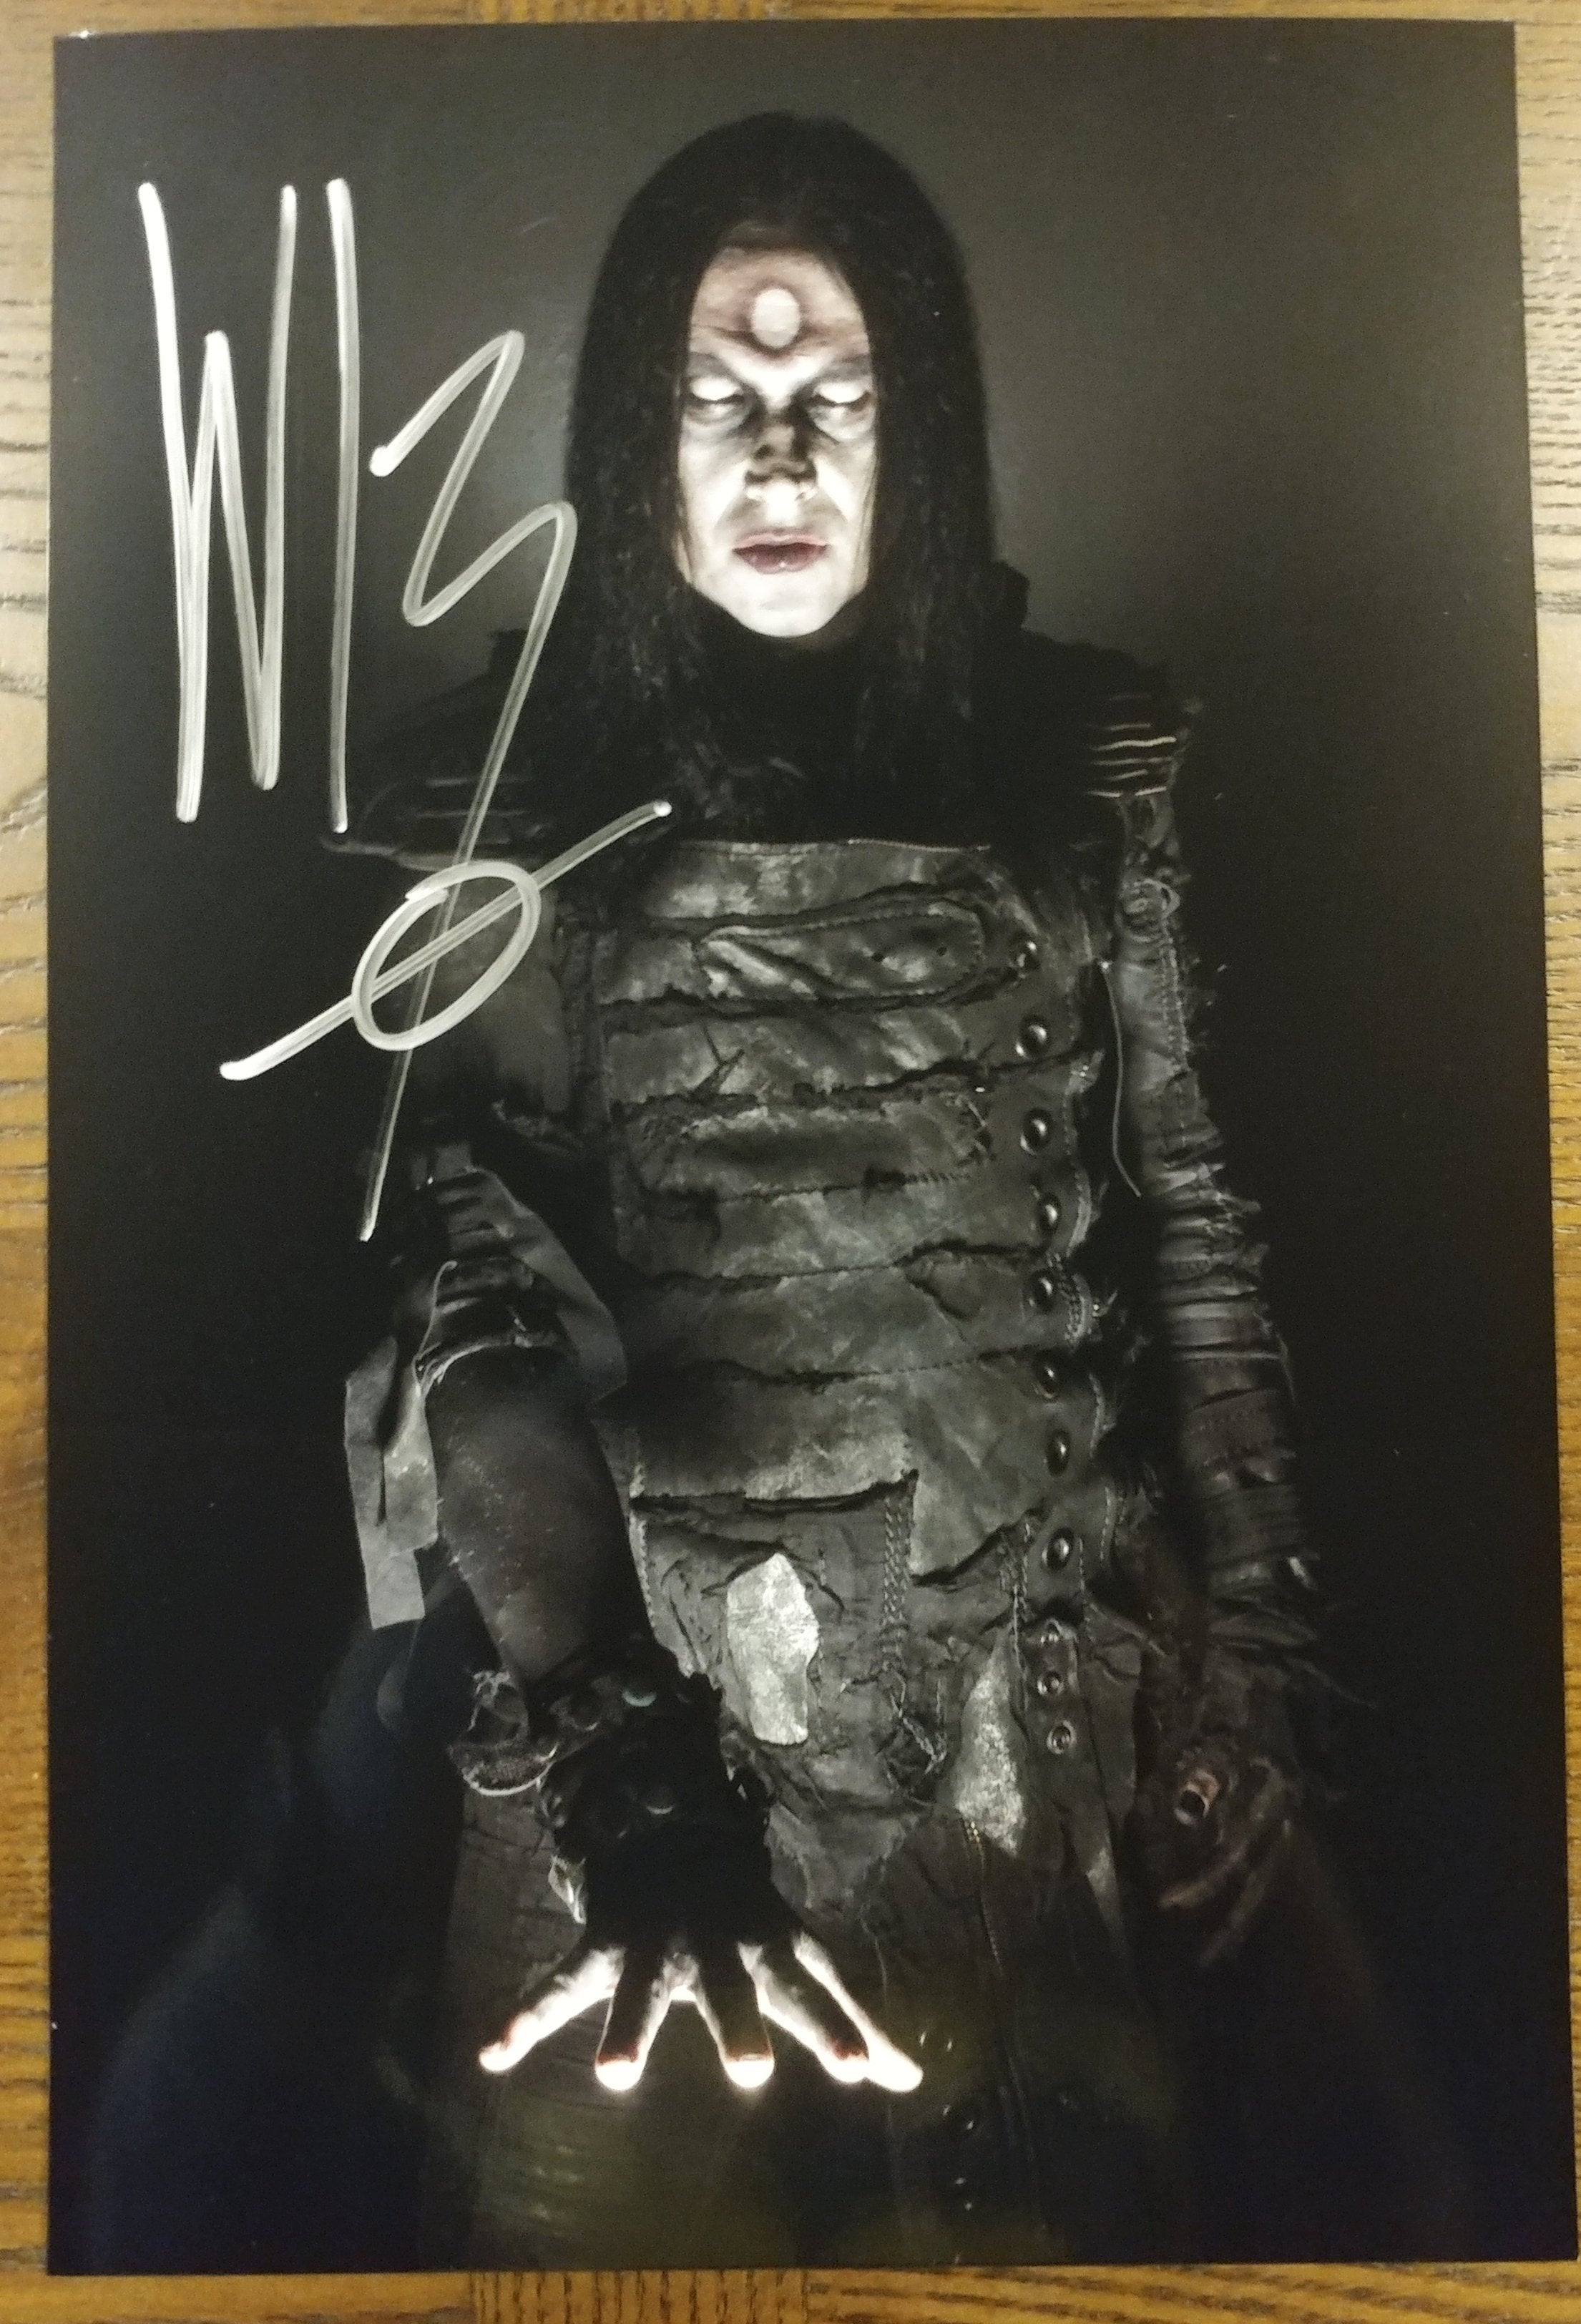 Wednesday 13 - Omen - signed limited edition 8x12 metallic print (LAST ONE!)